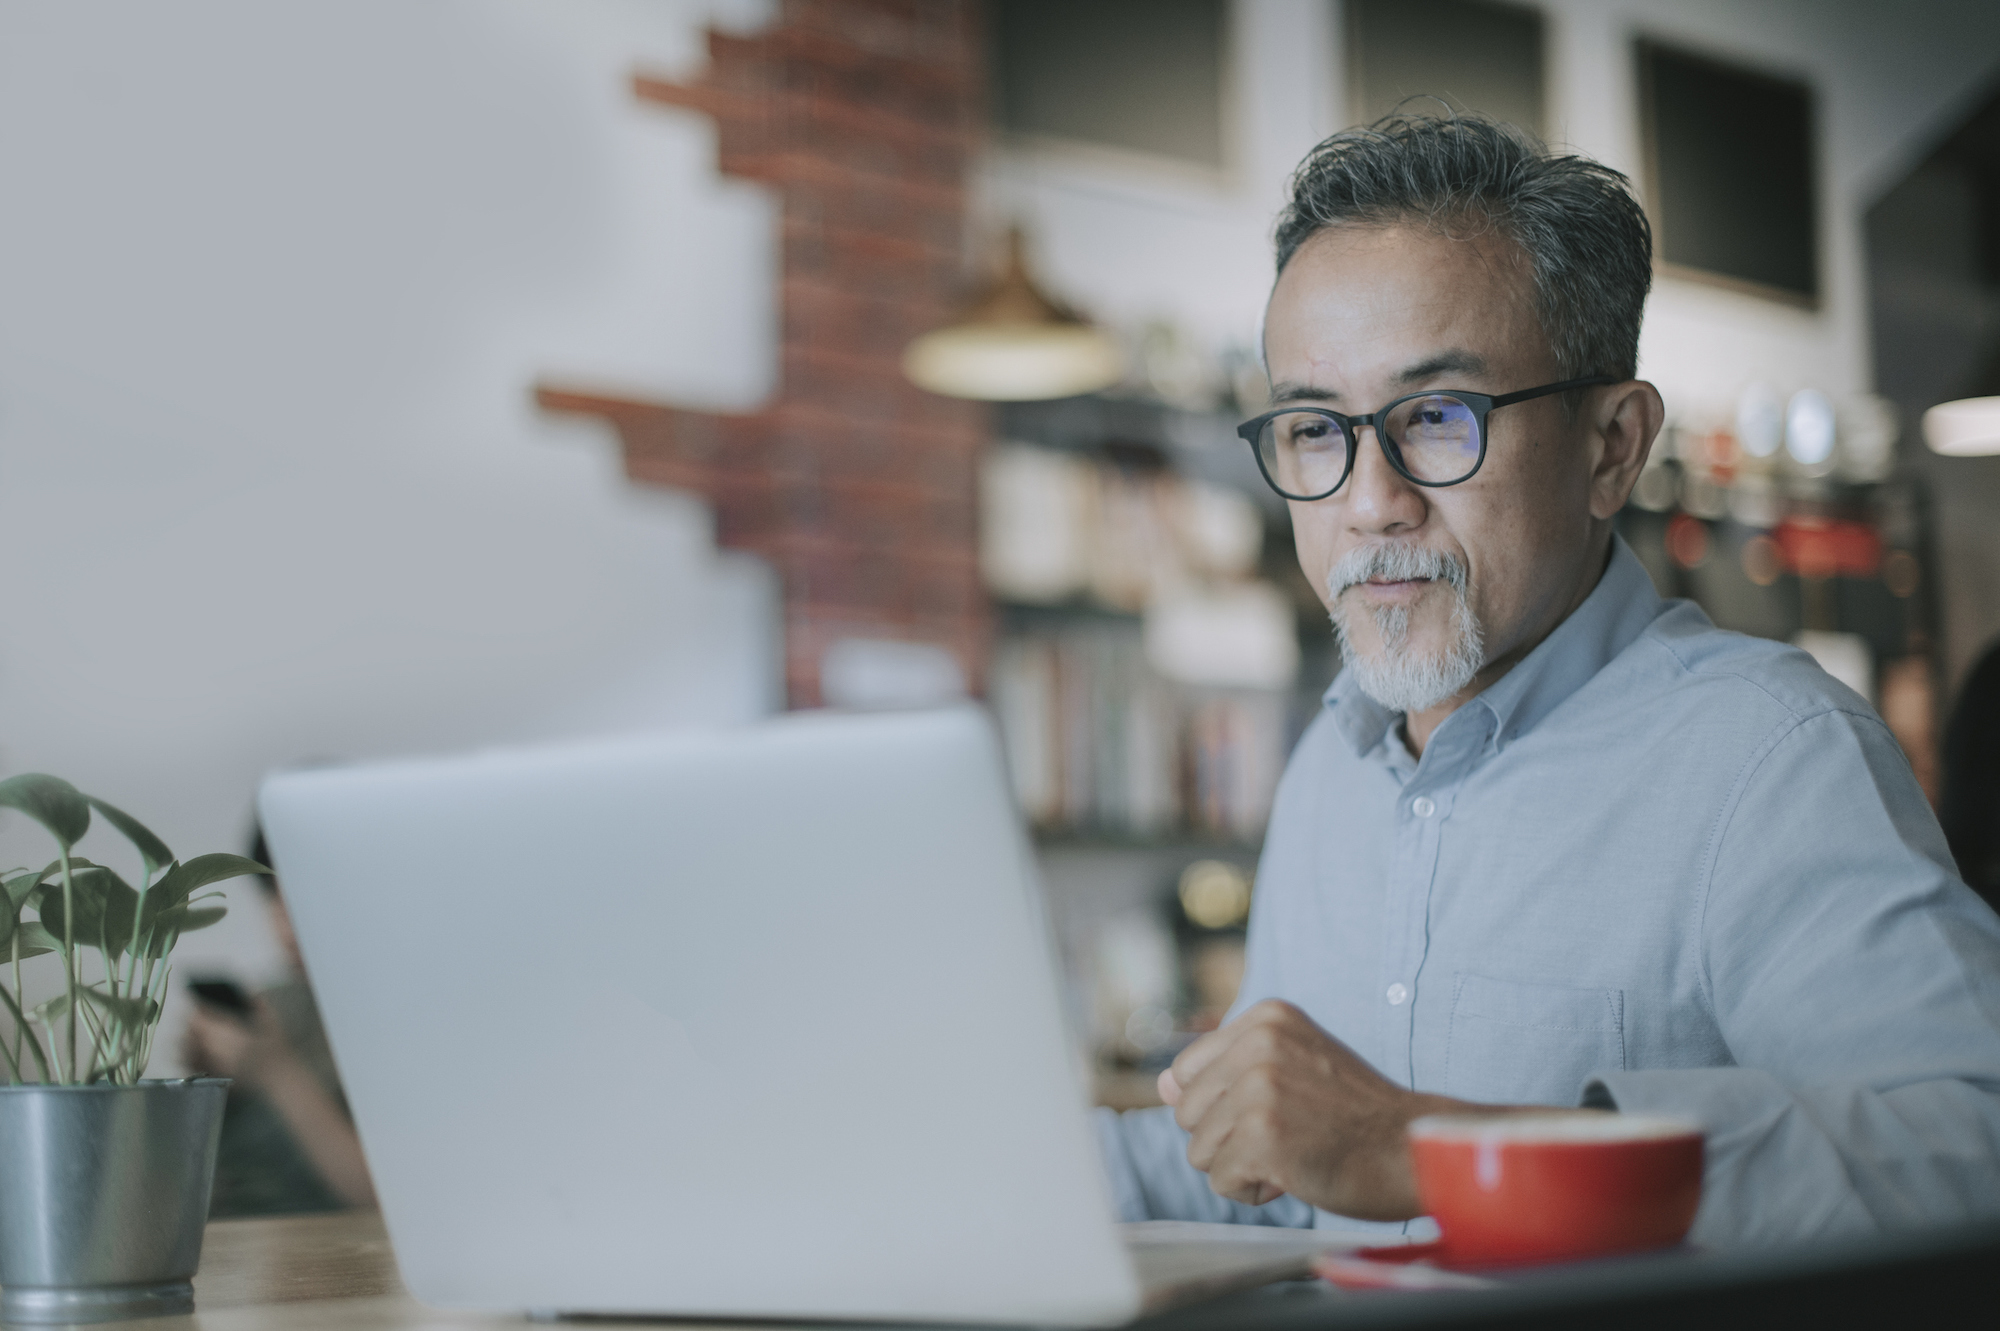 Man seated in front of computer with a cuppa